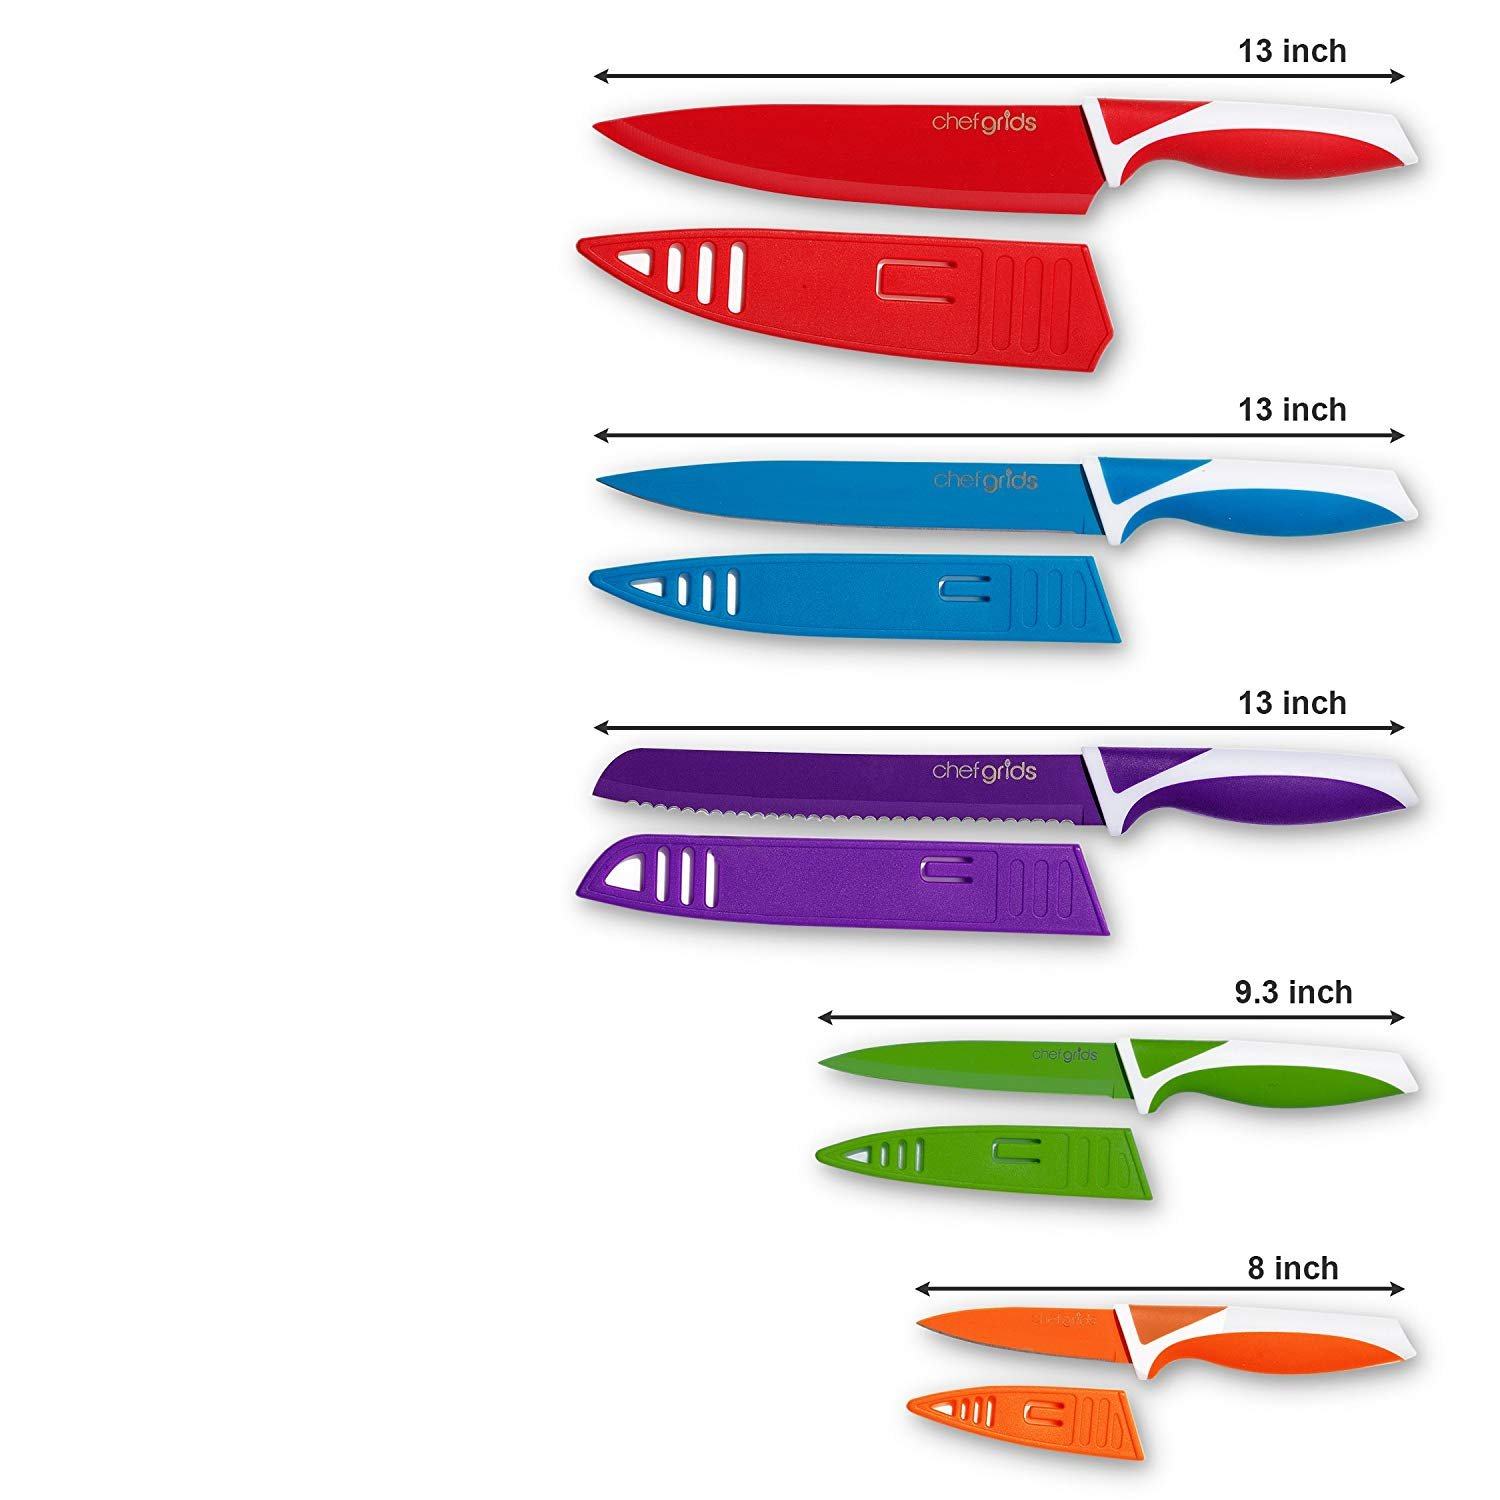 12-Piece Colorful Premium Kitchen Knife Set, 5 Non-Stick Stainless Steel Utility knifes for Carving, Paring with 5 Protection Sheaths and with Single Safety Glove by Chef Grids